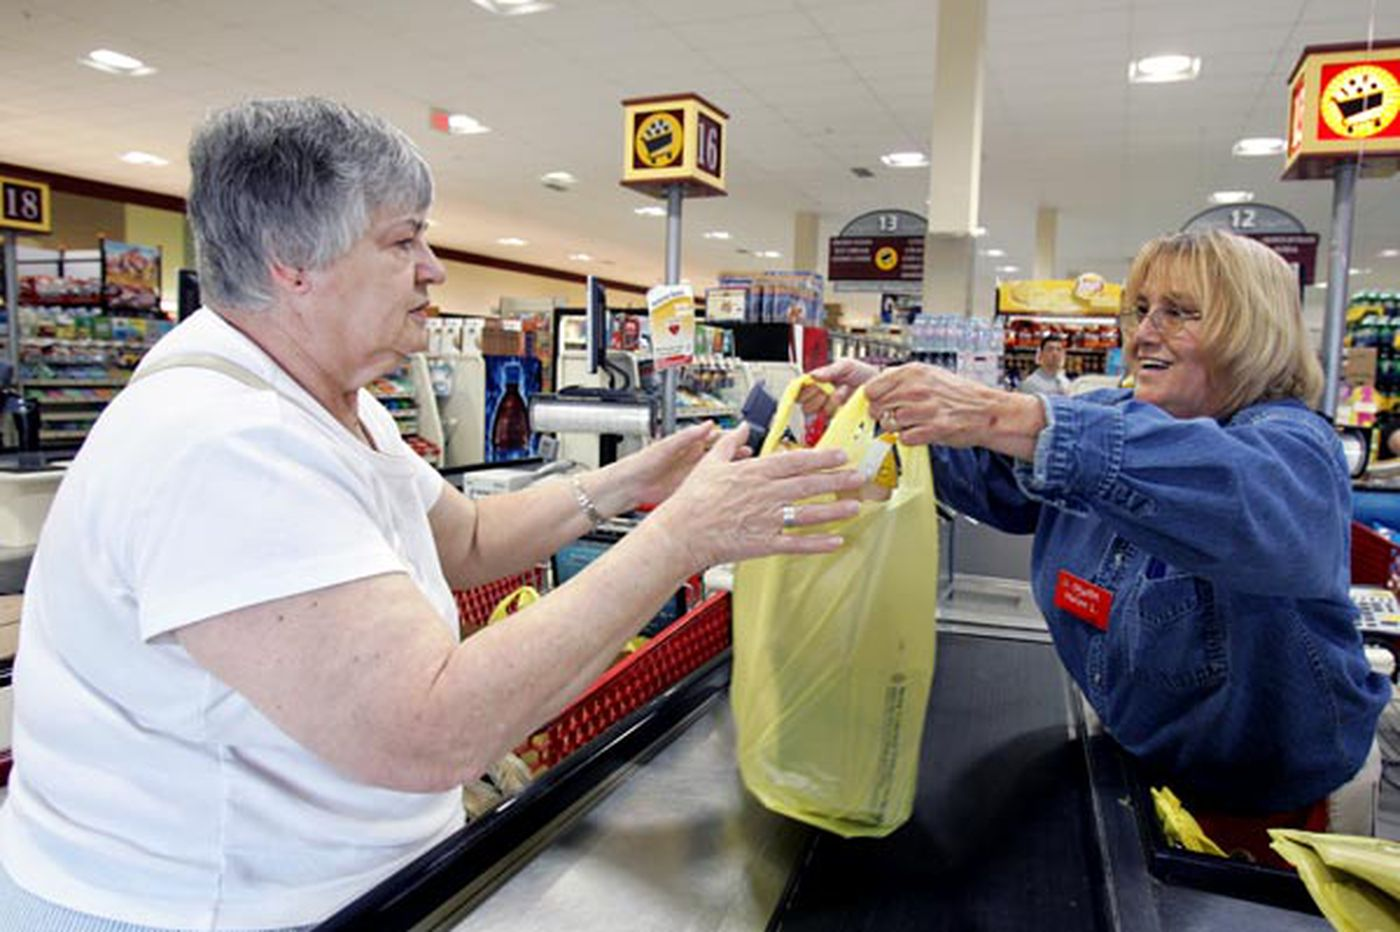 Pa. bill would tax 2 cents on each new plastic bag